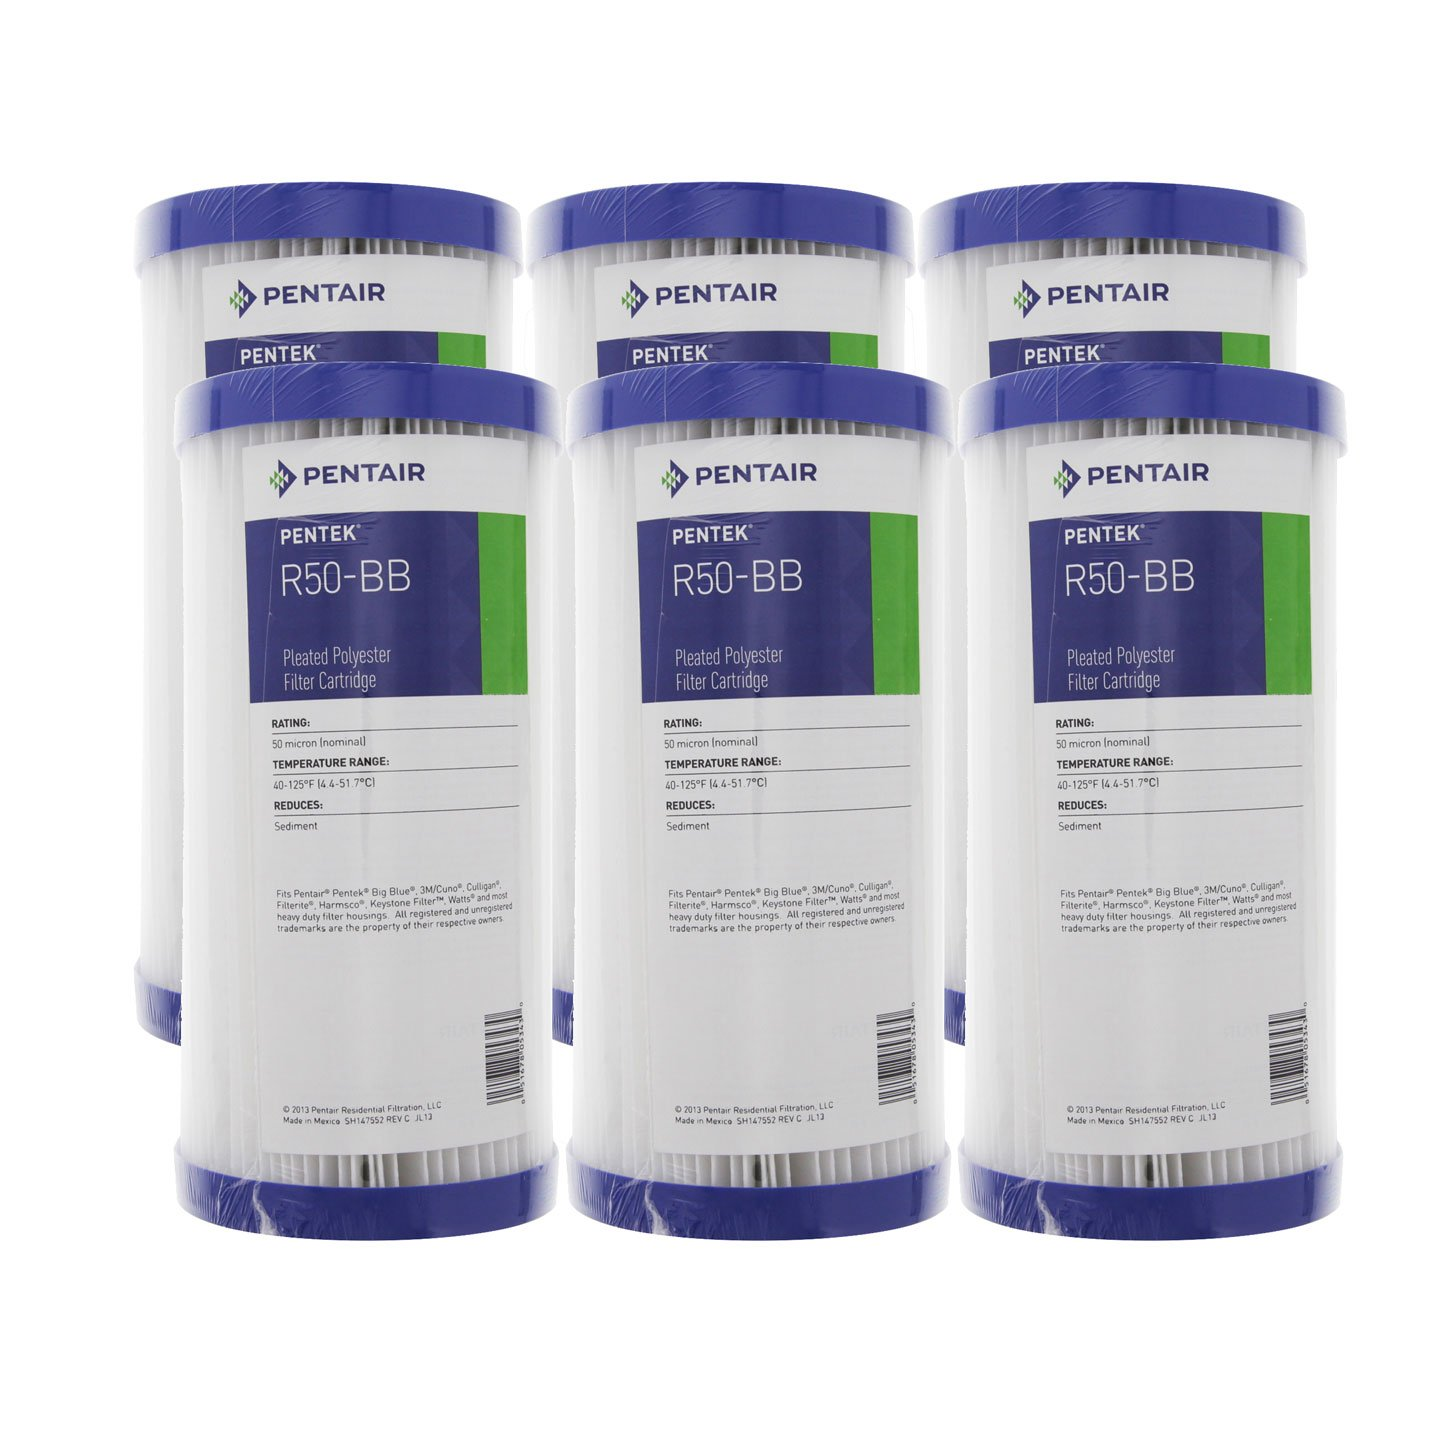 Pentek R50-BB 50 Micron 10 x 4 5 Whole House Pleated Sediment Filter 6 Pack